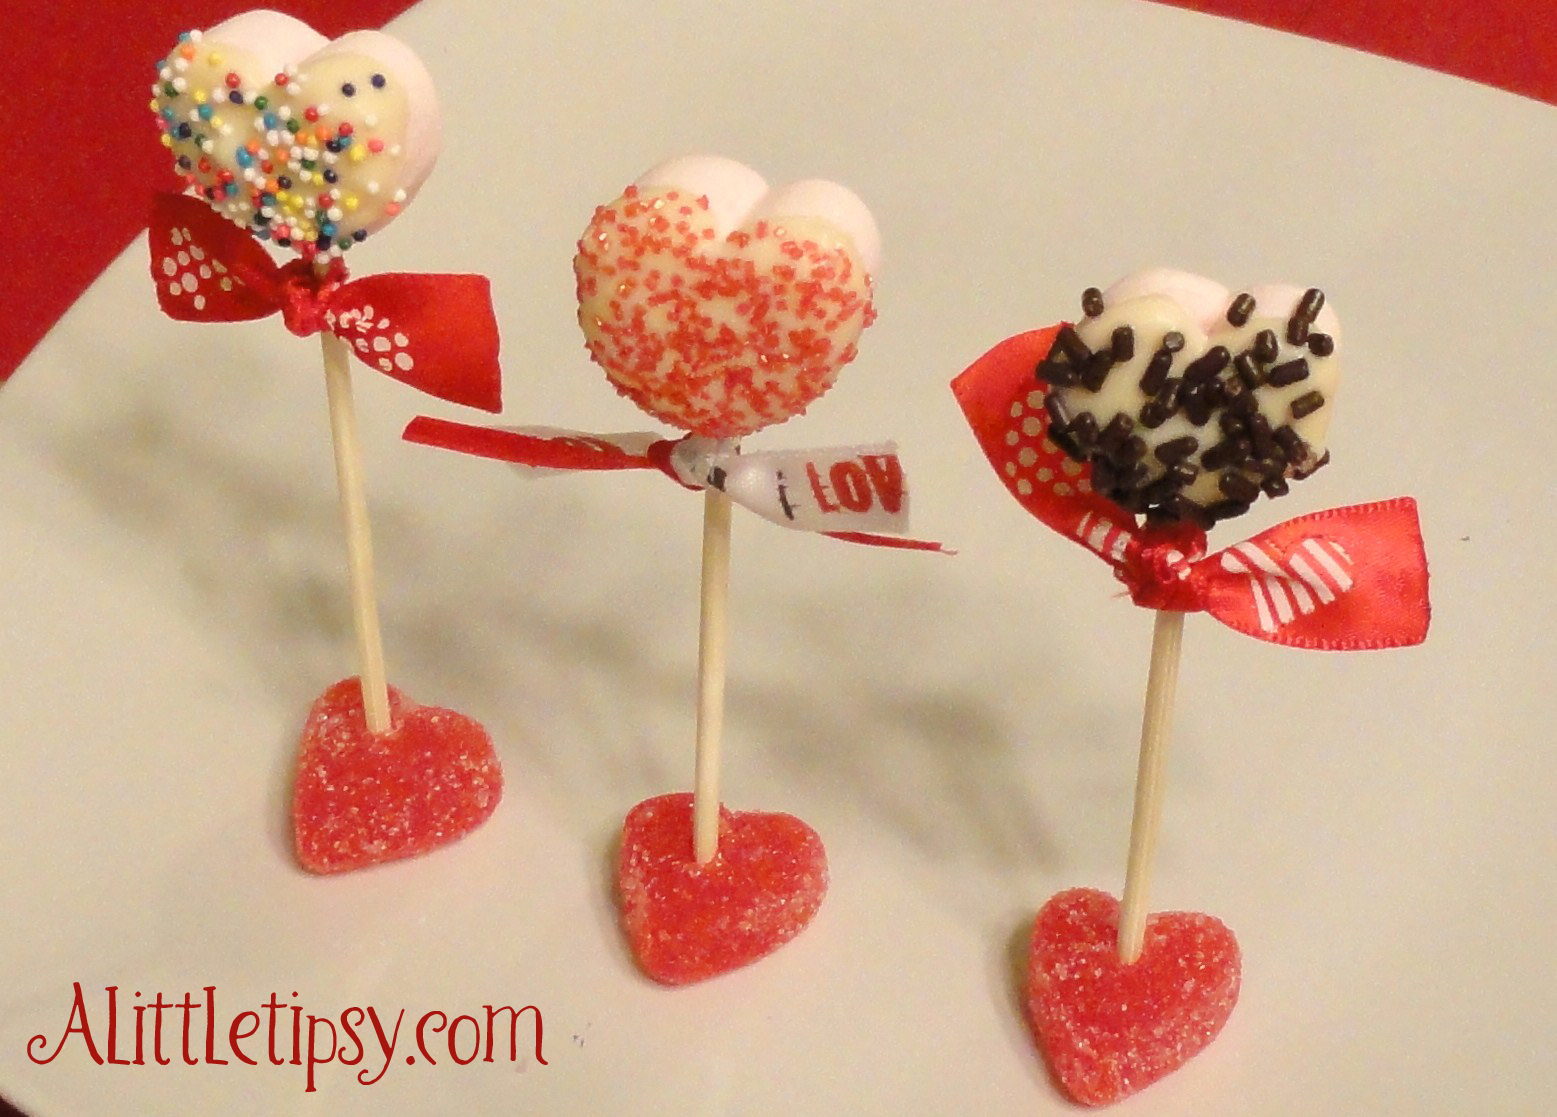 Marshmallow Pops - A Little Tipsy